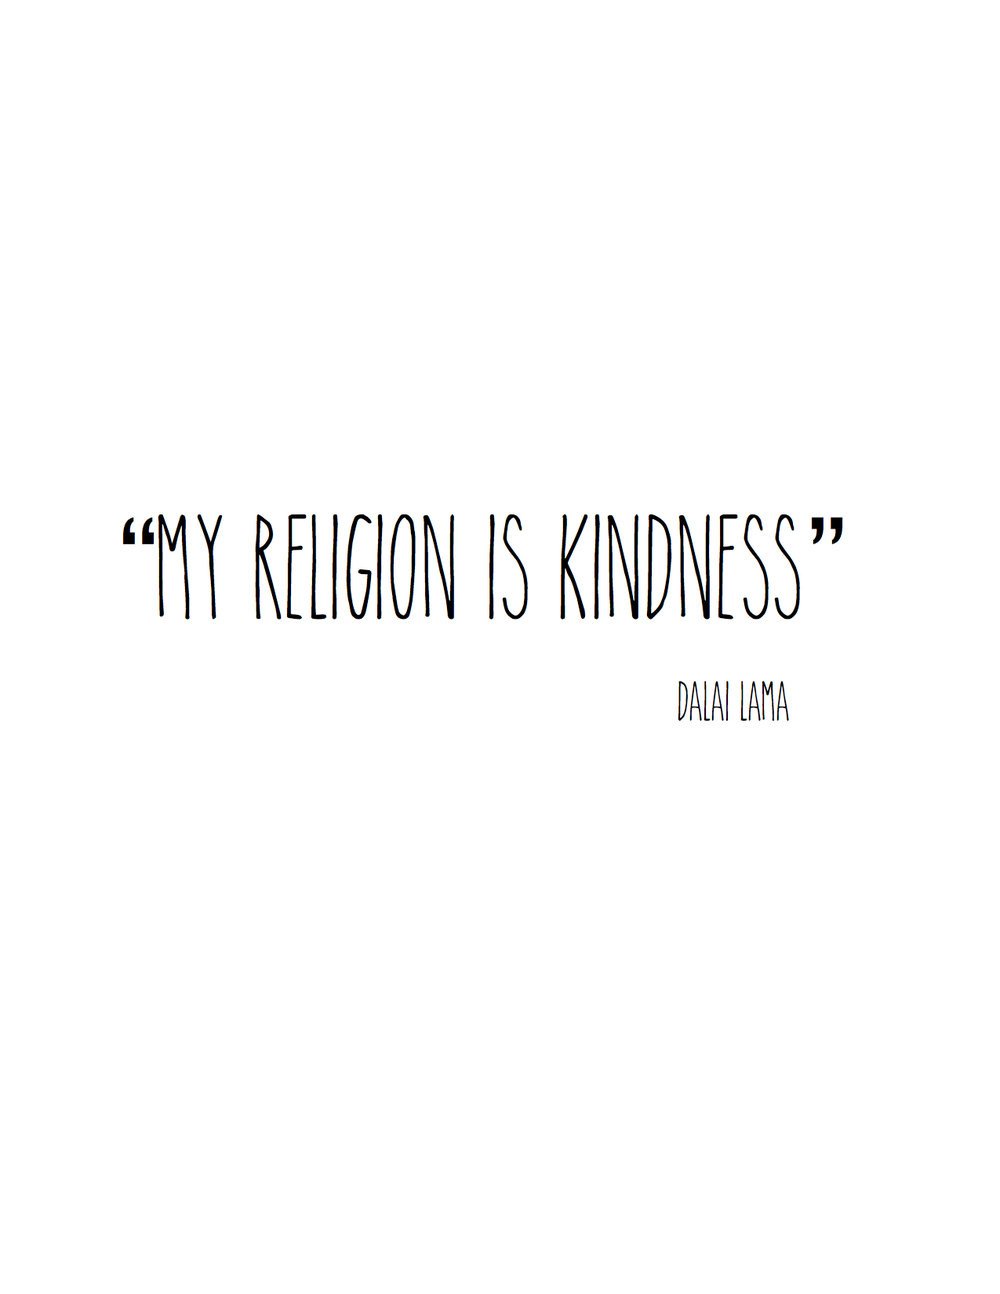 Religion is kindness.jpg